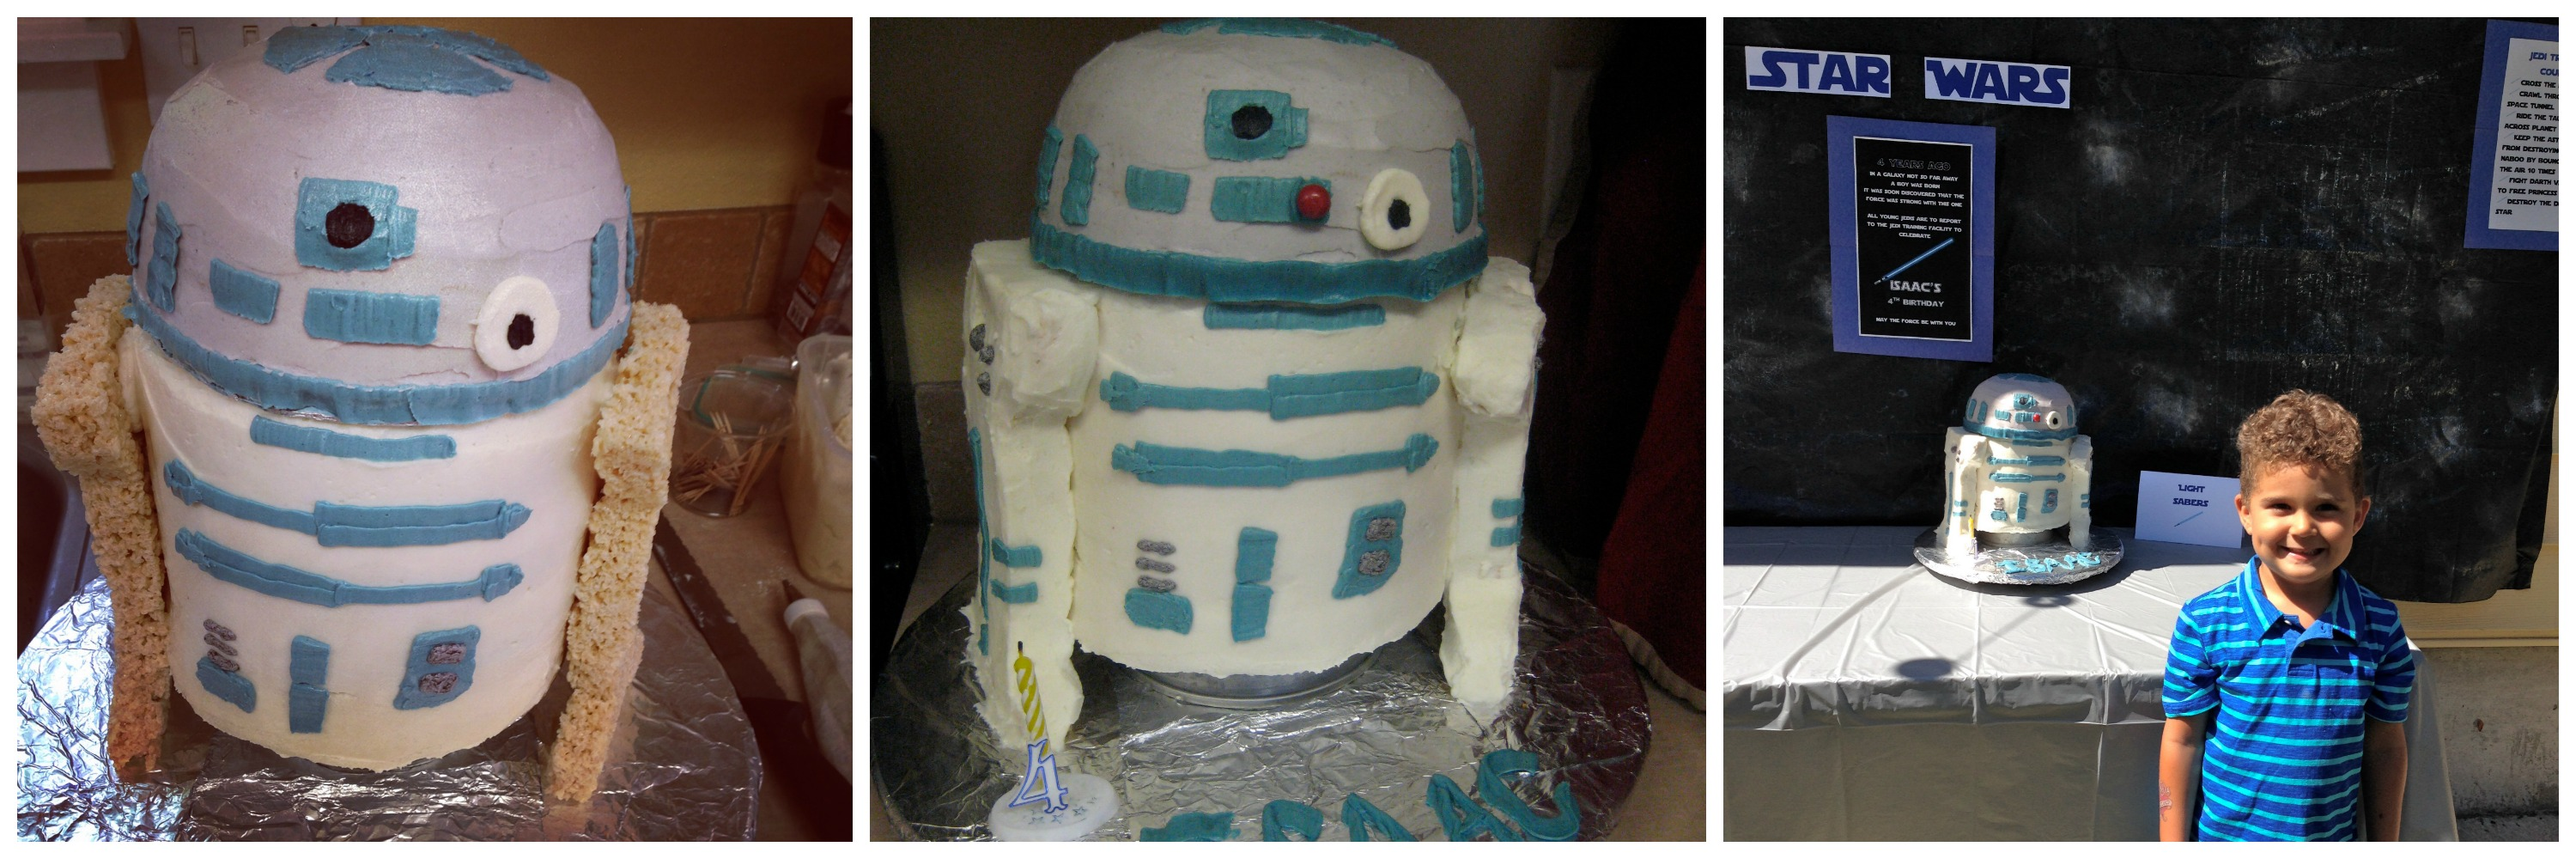 R2D2 cake collage2